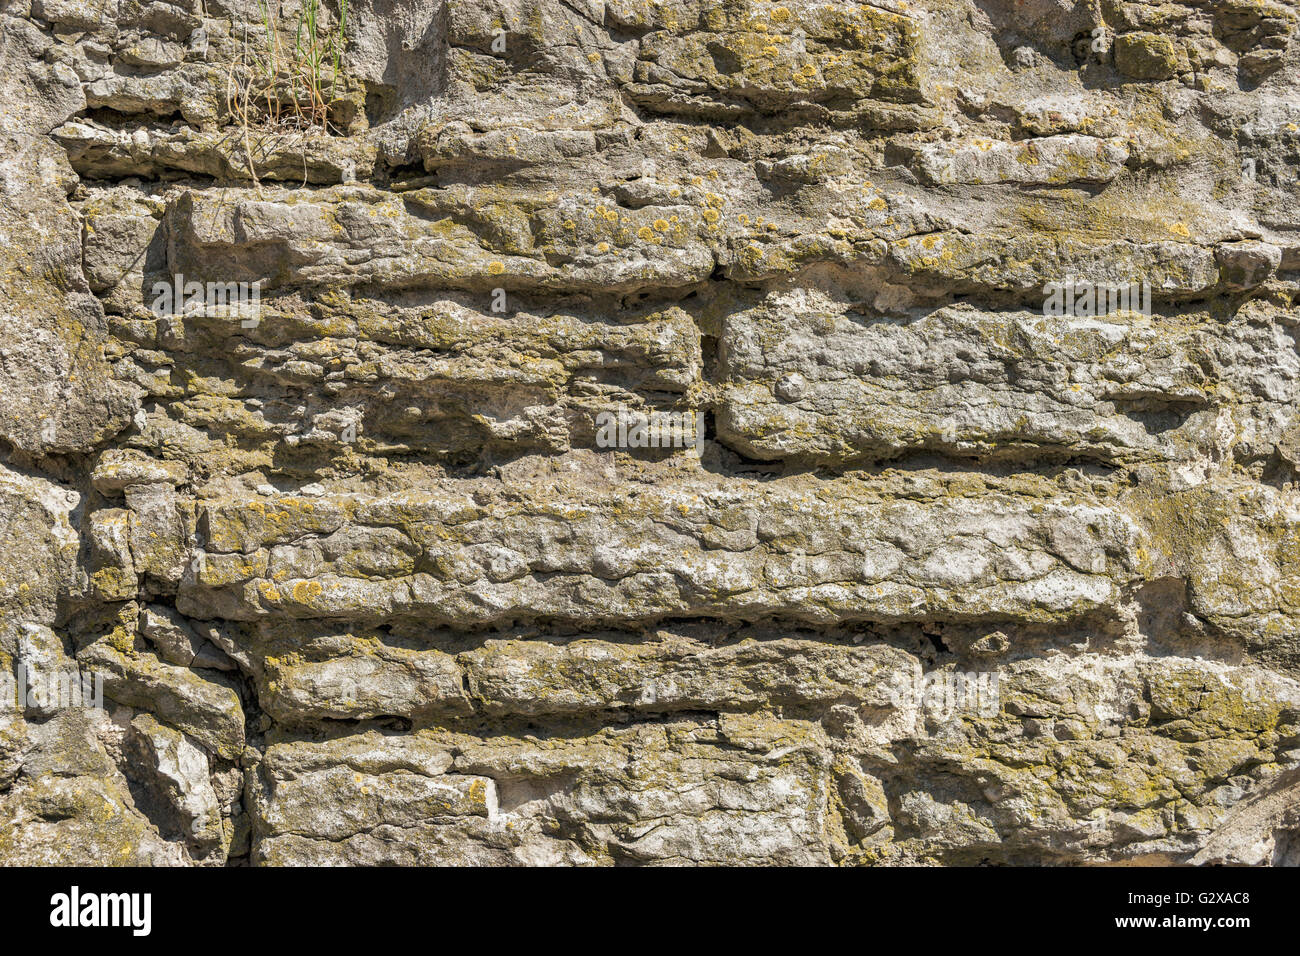 Details of an old gray stone wall - Stock Image